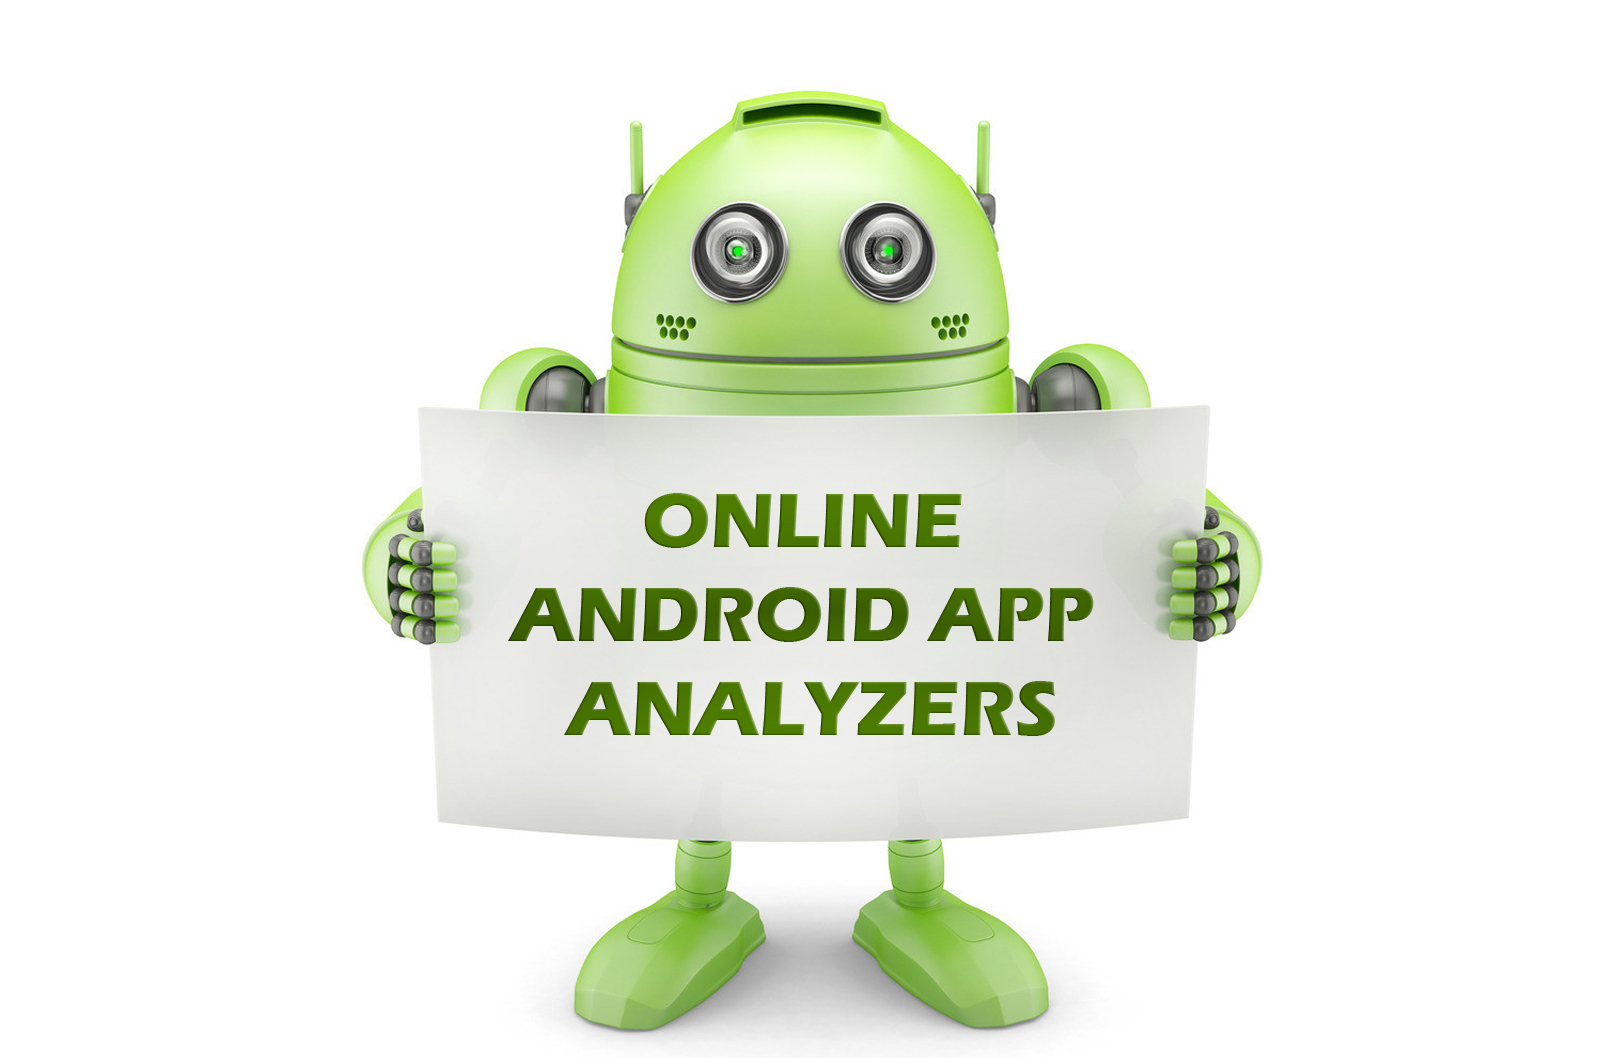 Online Android App Analyzers